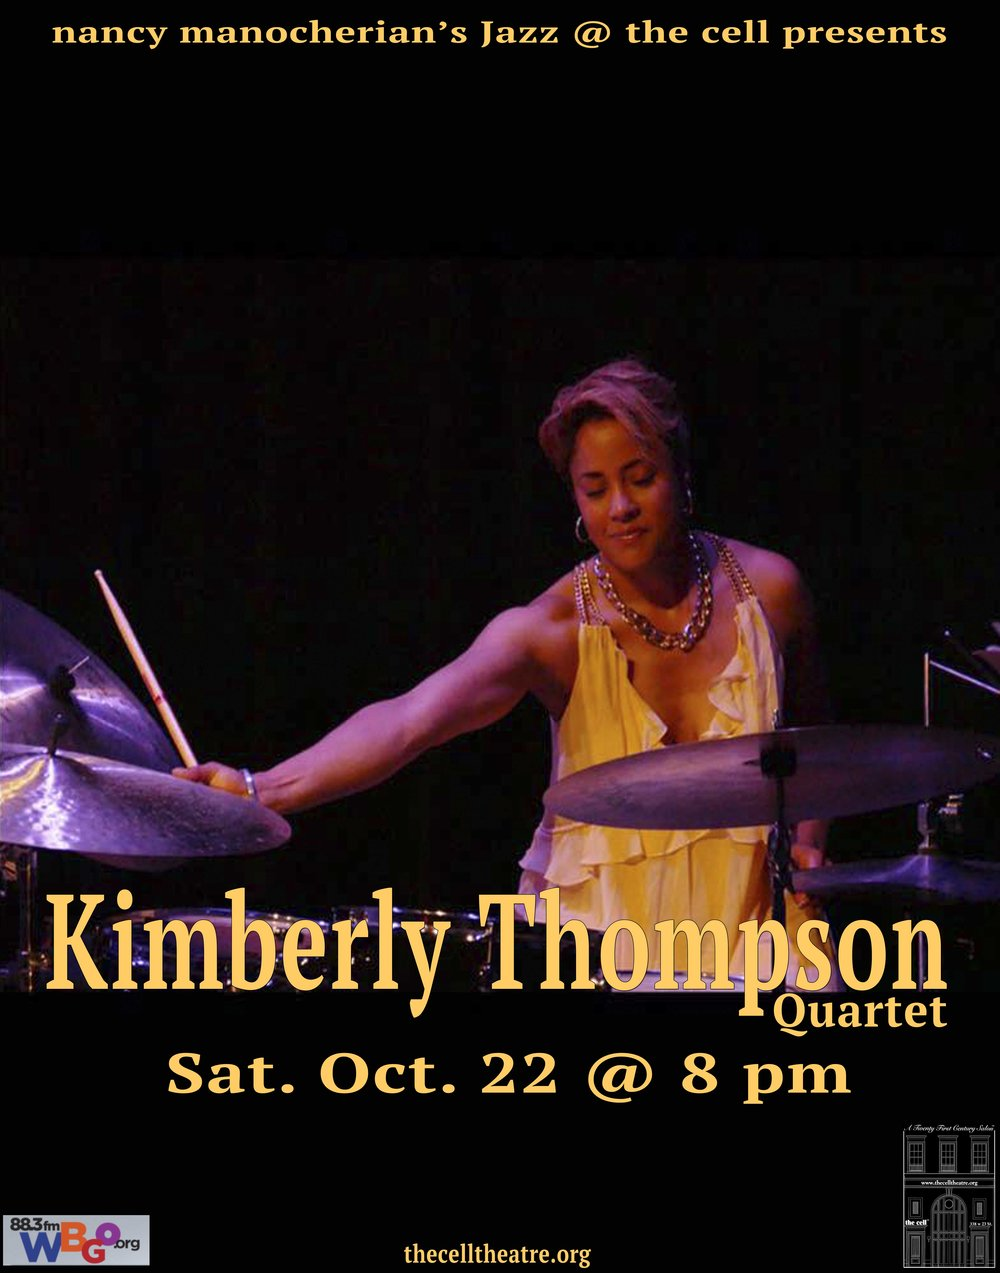 "Kimberly Thompson - Born in Los Angeles, CA; raised in St. Louis, MO., is a three time Grammy winner and noted drummer whose success has traversed from performing all over the universe with top pop & jazz icons as Beyoncé Knowles & fusion guitarist Mike Stern. A young television composer, as well as an actress,  and hosting house drummer for television show ""Late Night w/Seth Meyers first season, writer of opening & closing theme song on the legendary TV network NBC. Kimberly is the President of female founded record label, producing 6 records & 200 films, on label ©KTMUSICPRODUCTIONS, a Harlem, NY based production company committed to film, history, live performances, education, compositions, & lyrical songwriting. Her latest Jazz CD release, Treasures Abound (A Tribute to the Jazz Greats) features her dynamic drumming & arranging featuring some of jazz & Walt Disneys timeless musical selections recorded by jazz giants like Miles Davis, Bill Evans, & Thelonious Monk; showcasing modern themed classical etudes & jazz original songs written & performed with her jazz quartet."